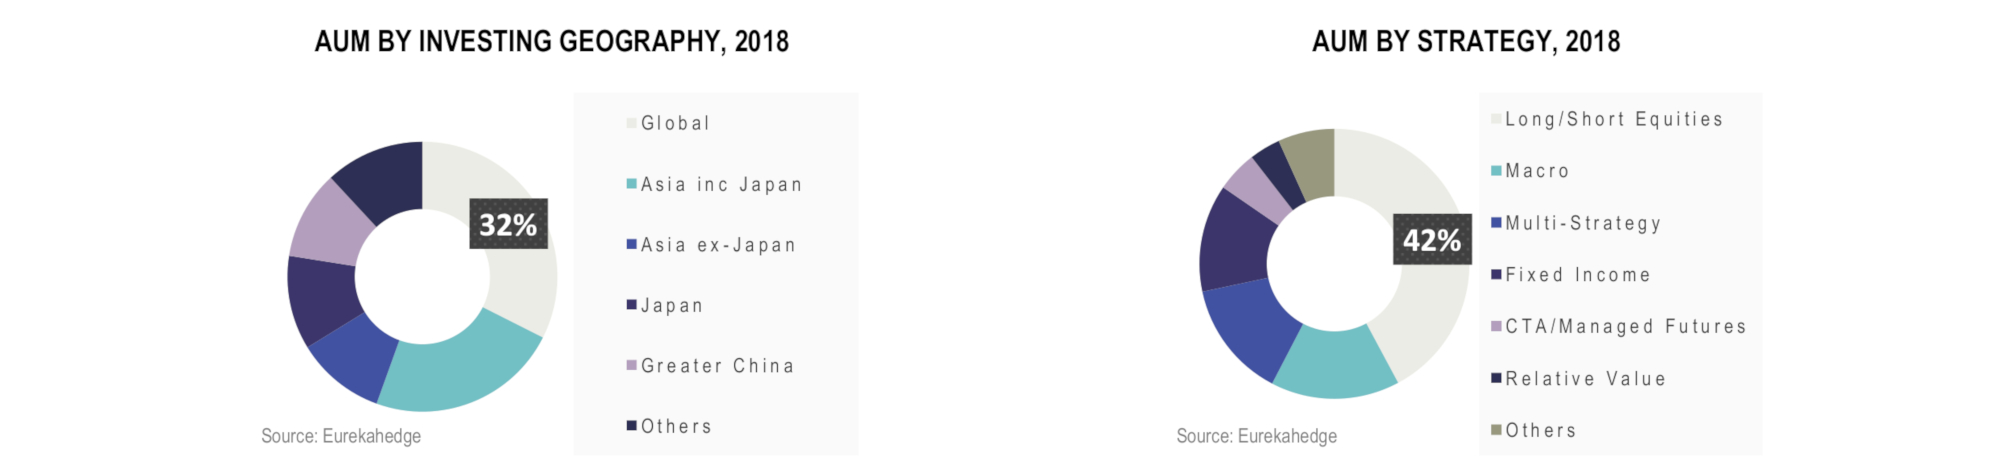 Asian Hedge Funds Infographic April 2018 - aum by investing geography and strategy